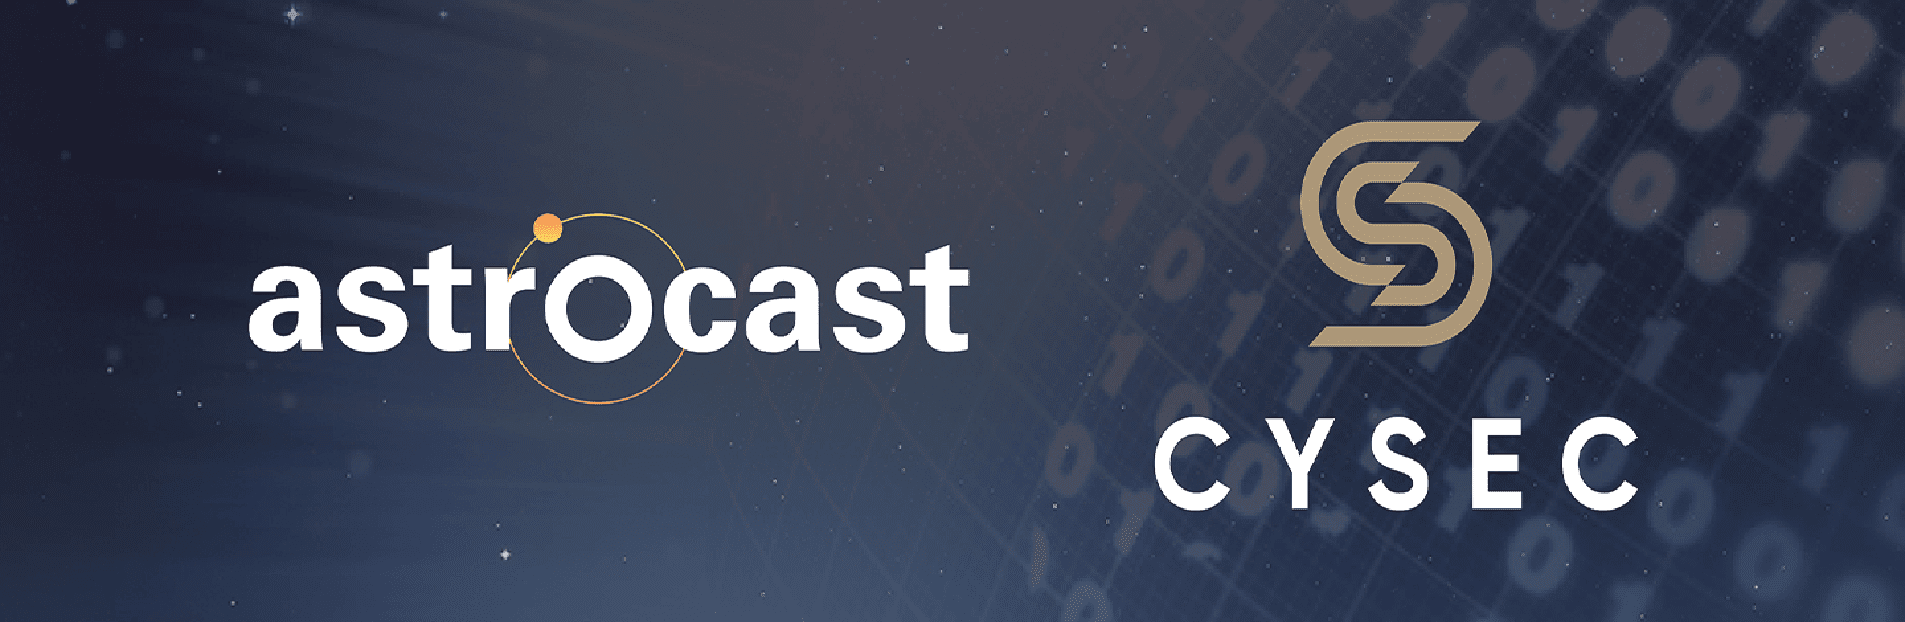 astrocast_cysec-secure-iot-network